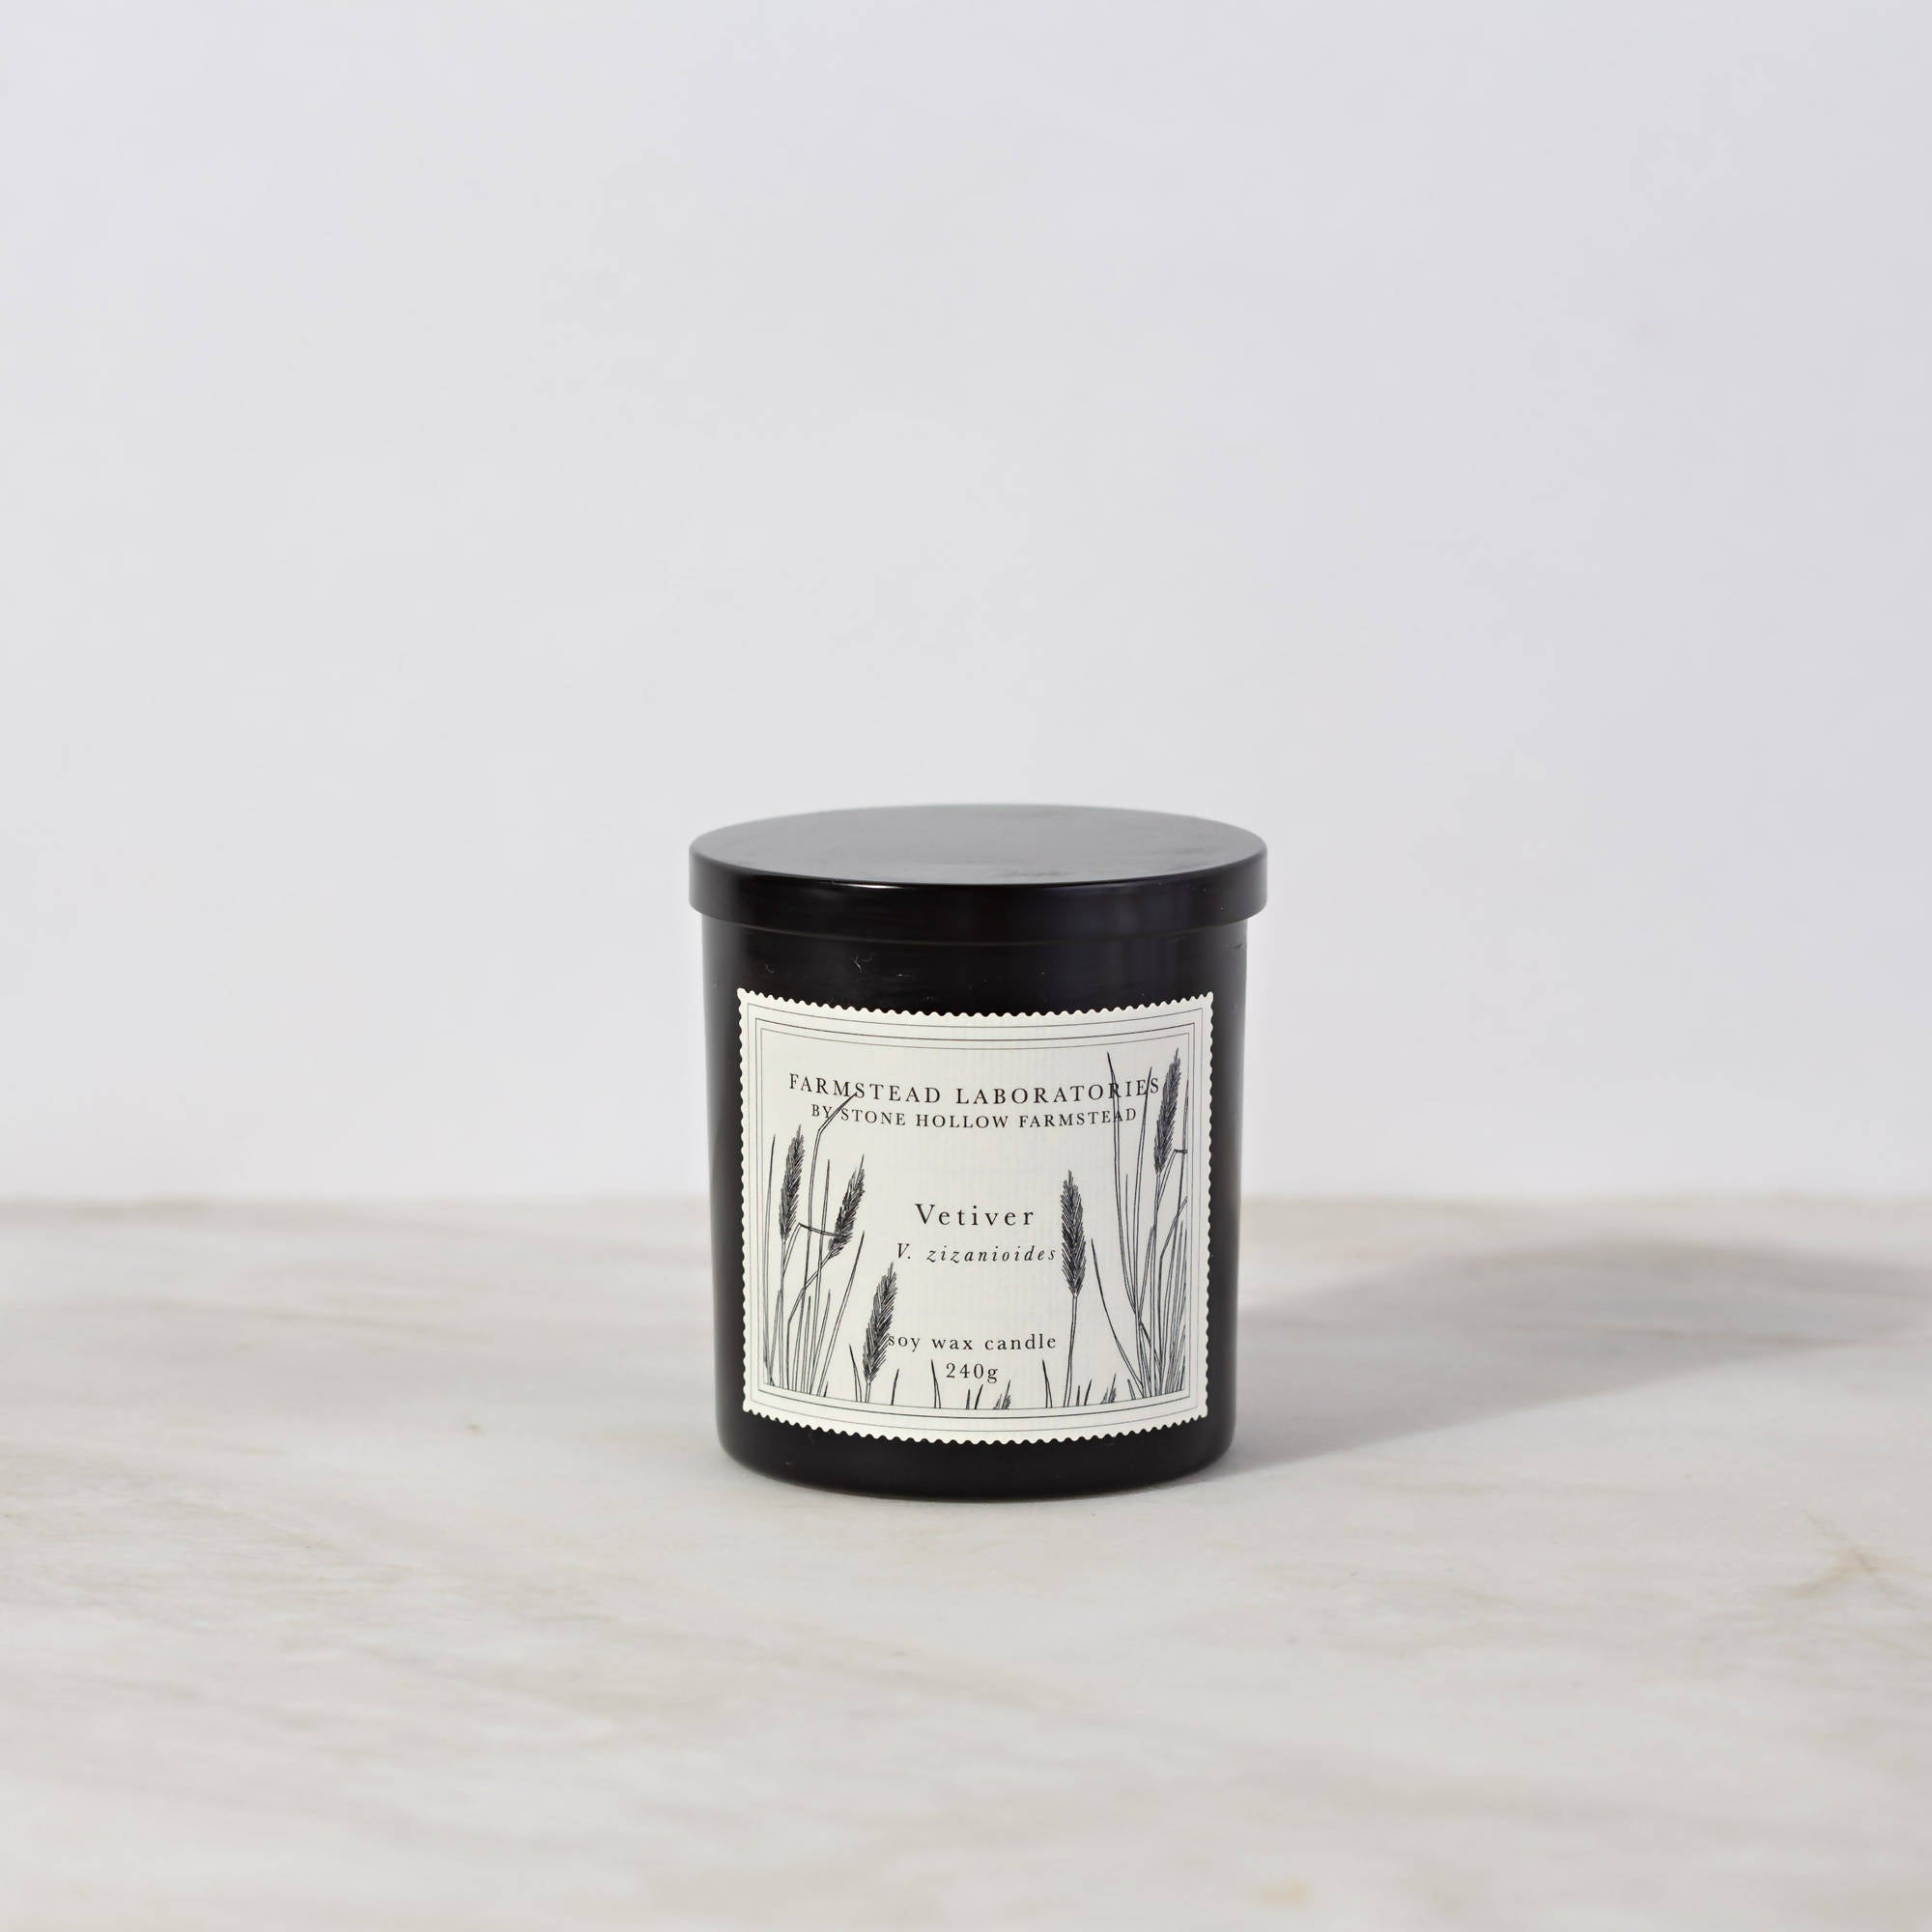 BOTANICAL SOY WAX CANDLE / VETIVER